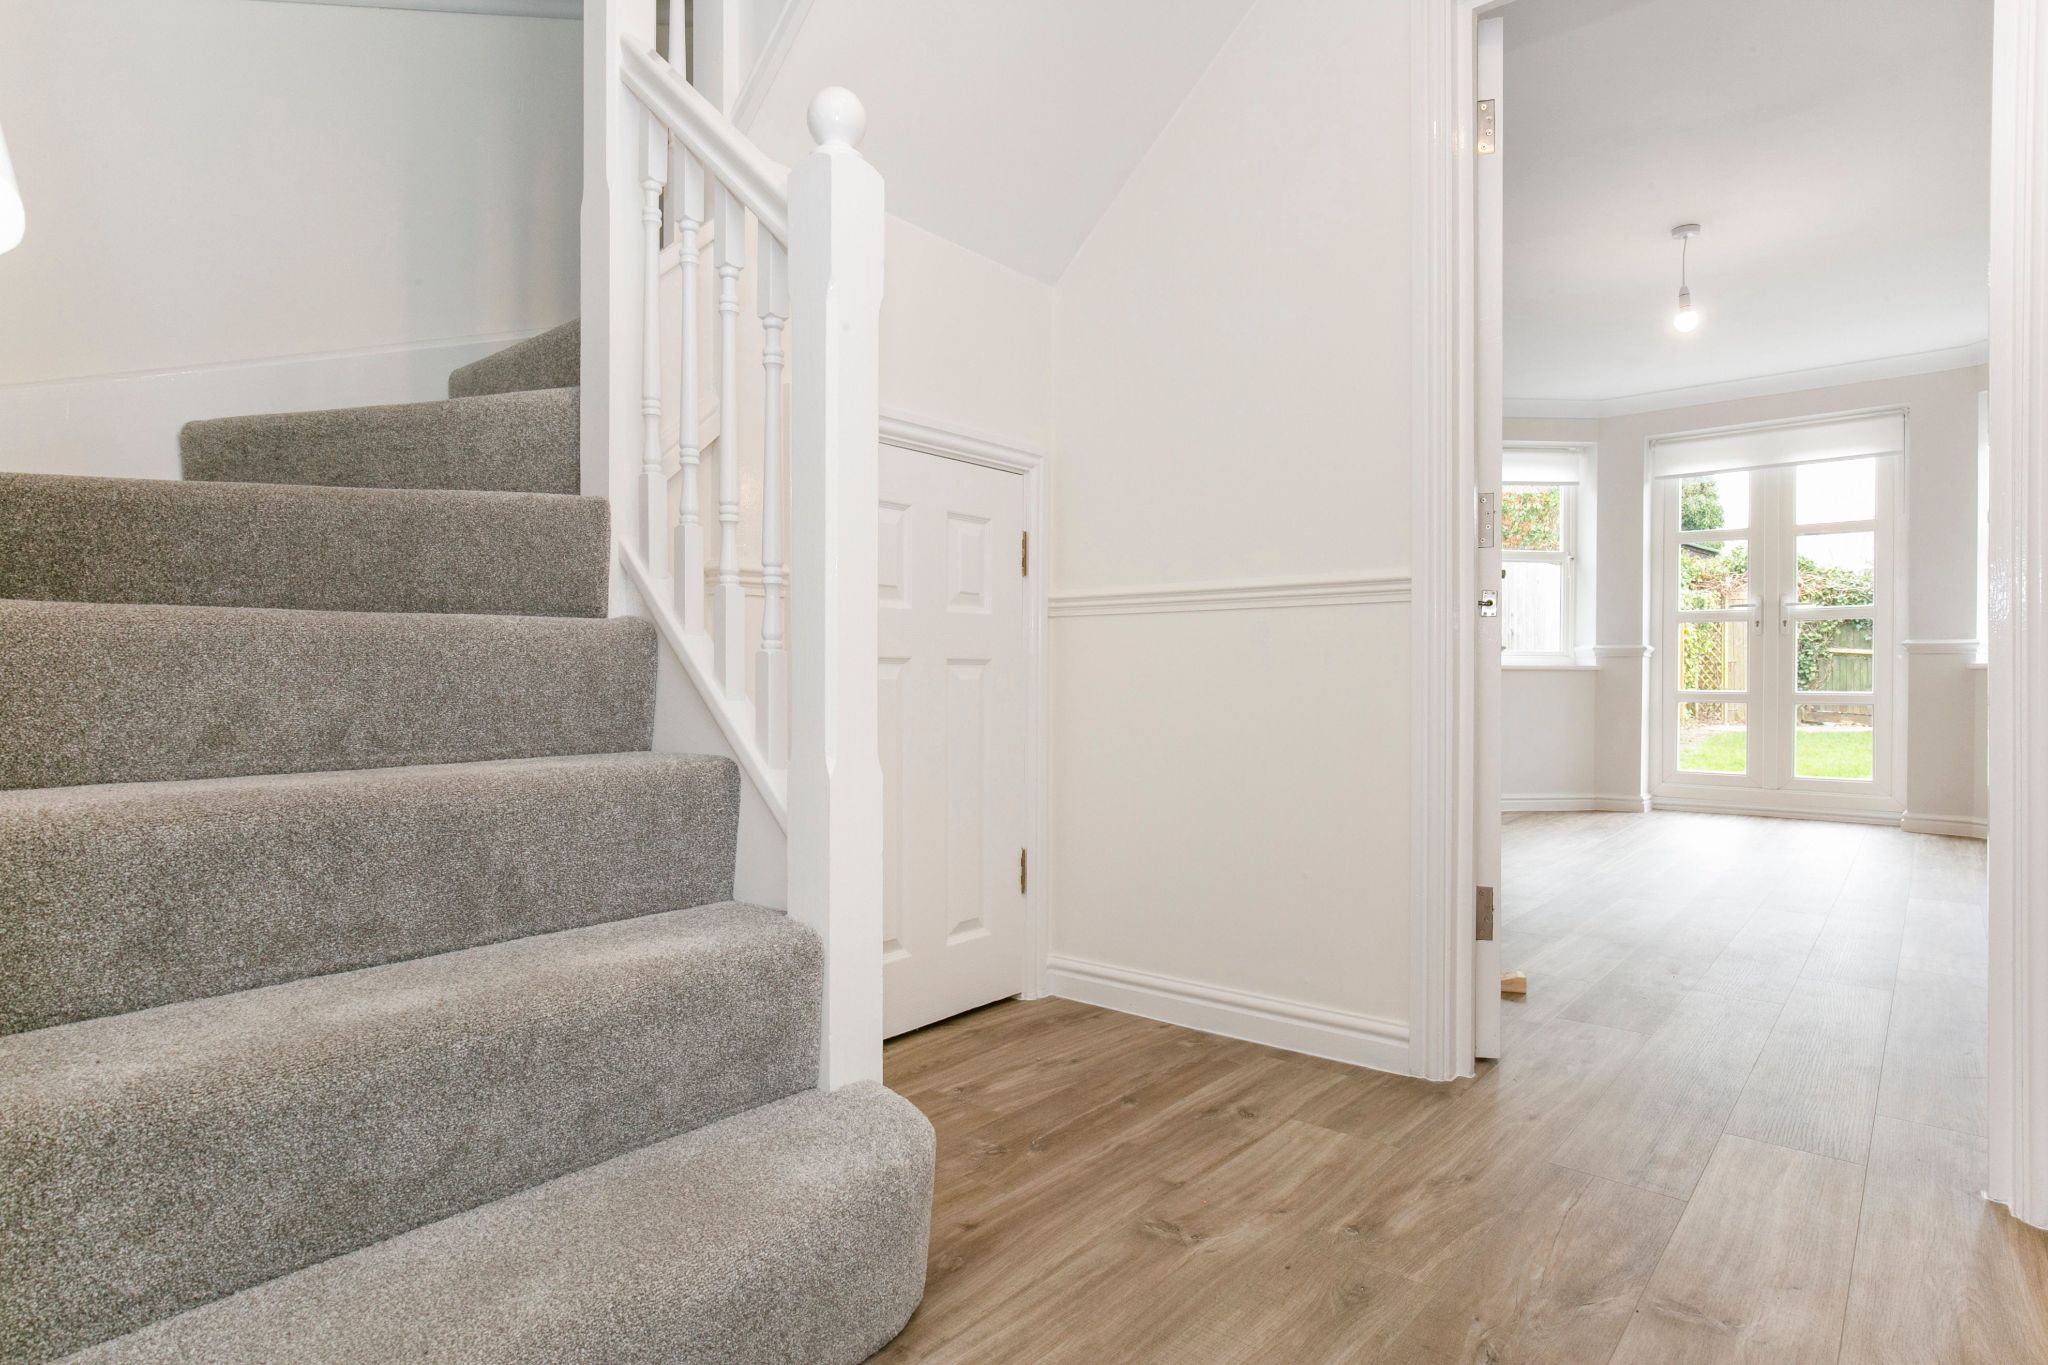 5 bedroom mews house For Sale in Digswell - Property photograph